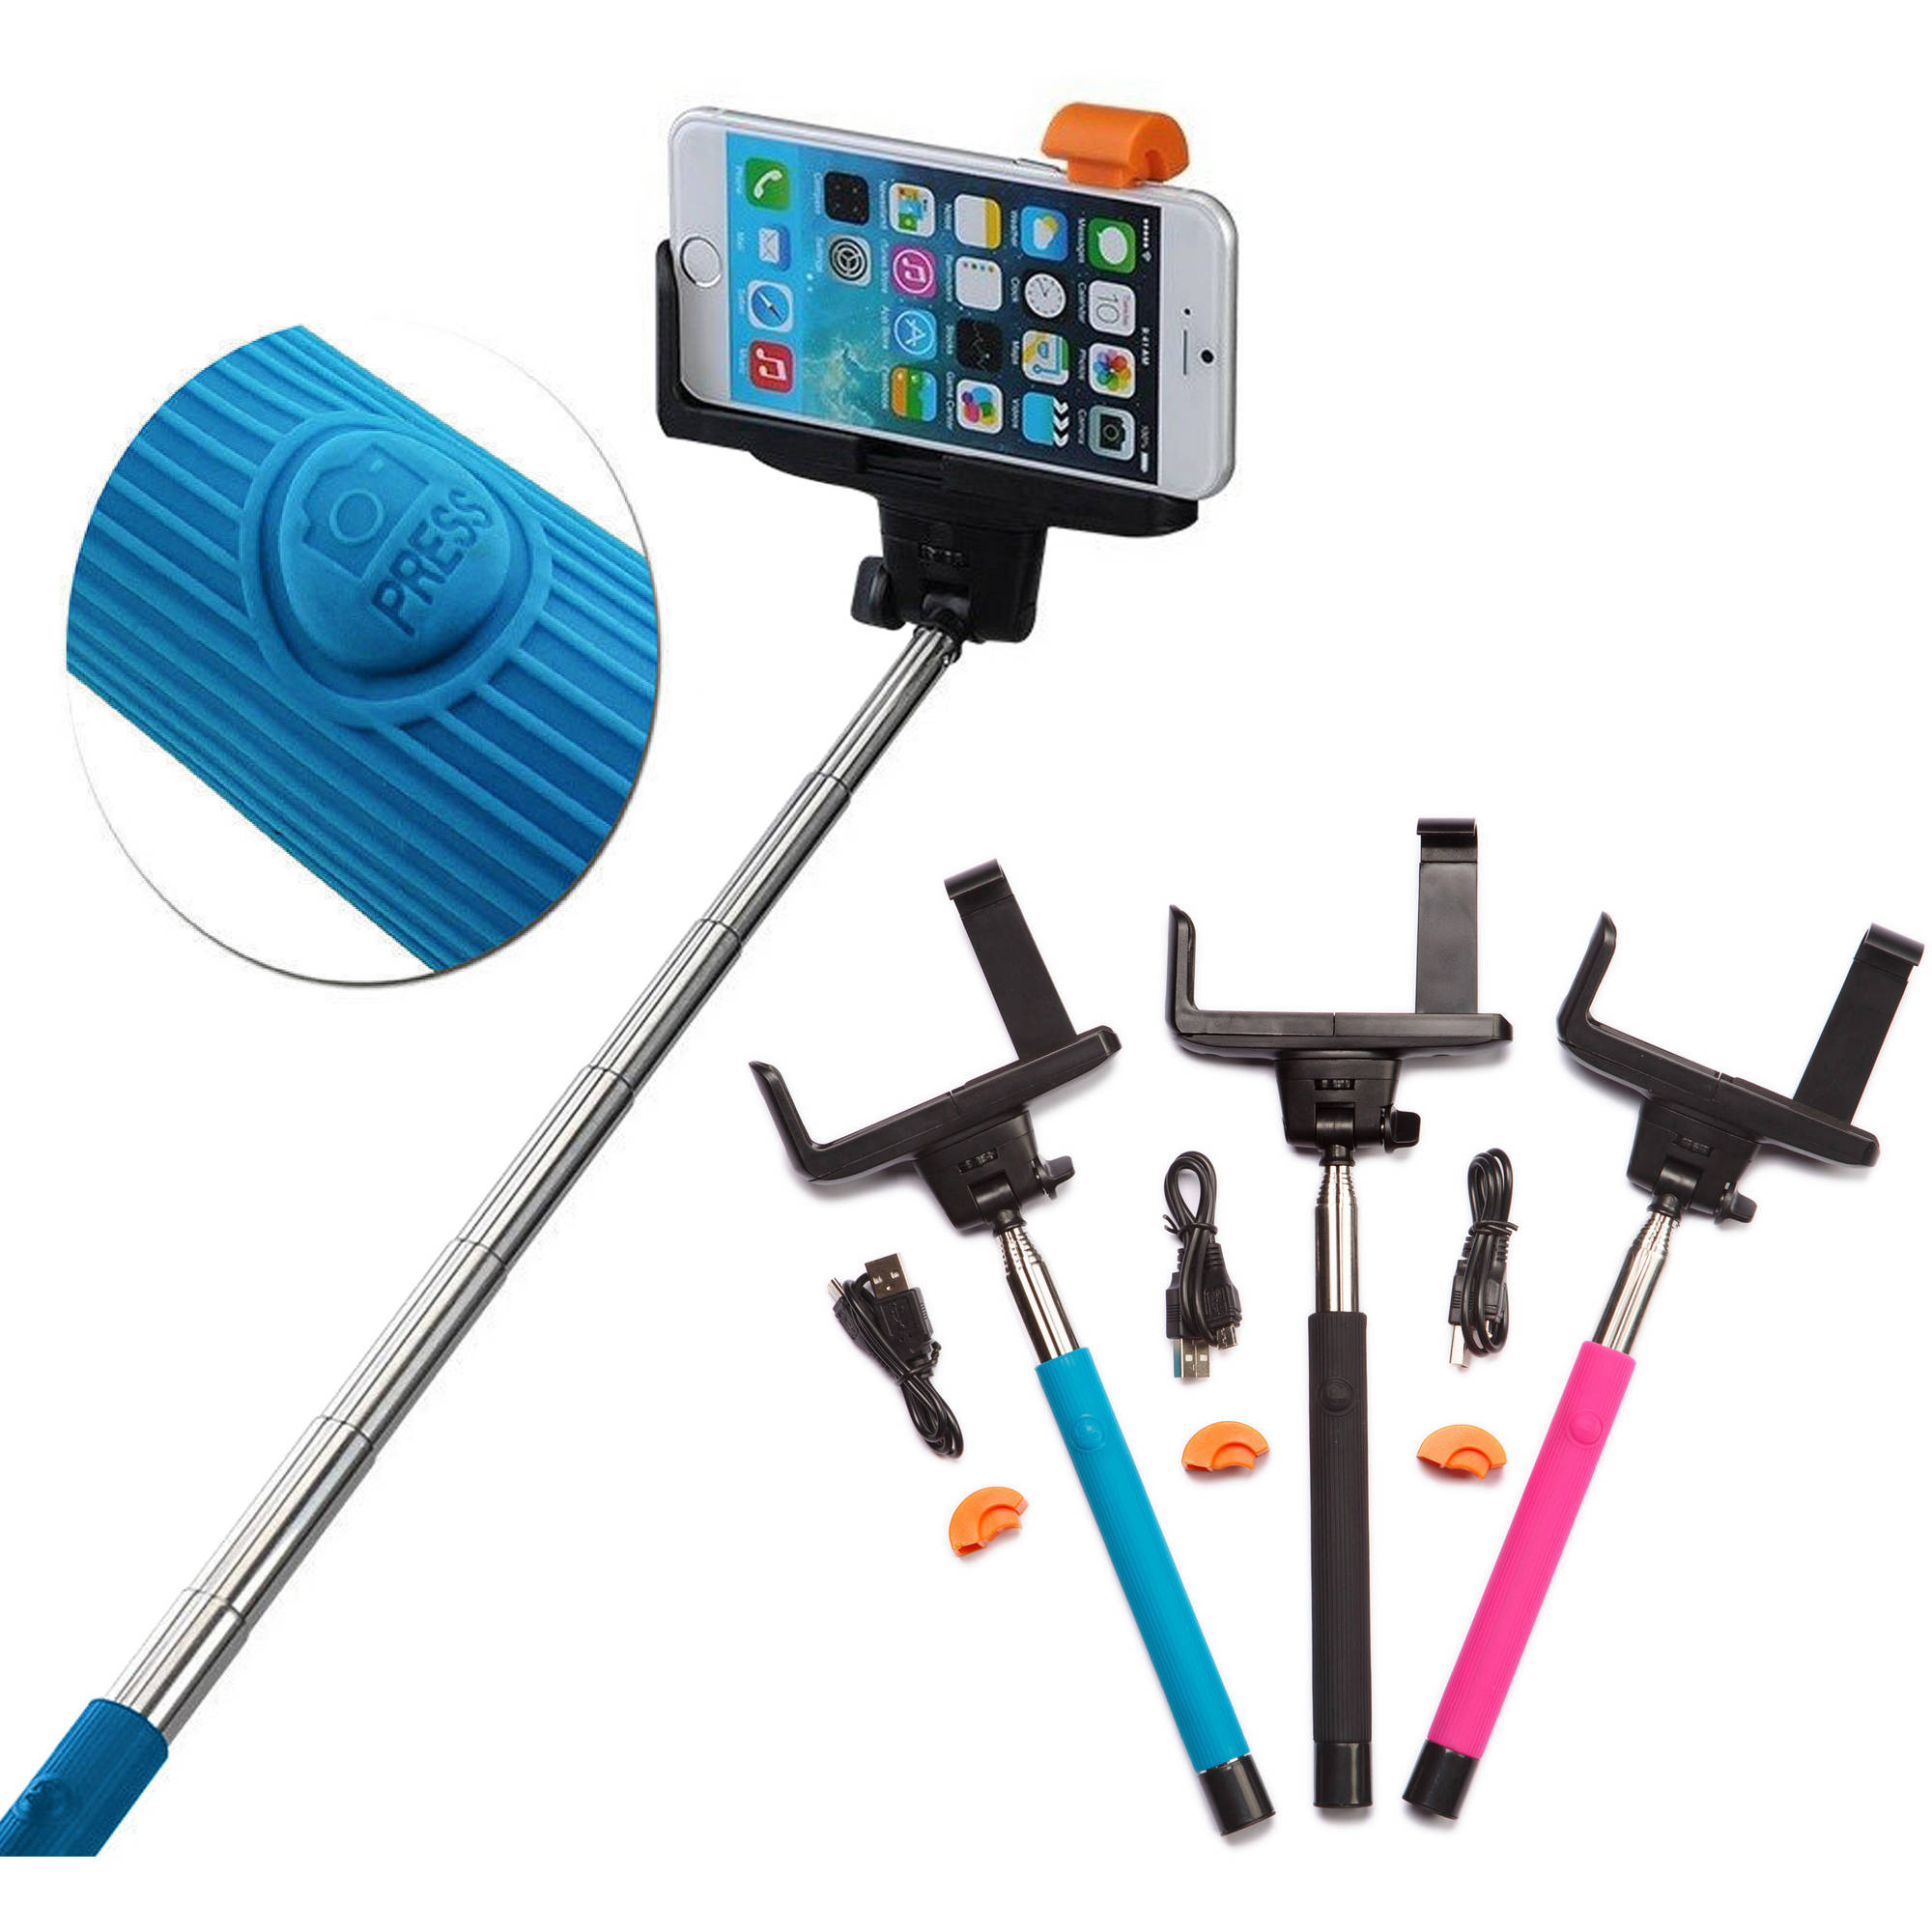 iPhone, Samsung Galaxy and Android Carco go selfie stick bluetooth remote shutter 42